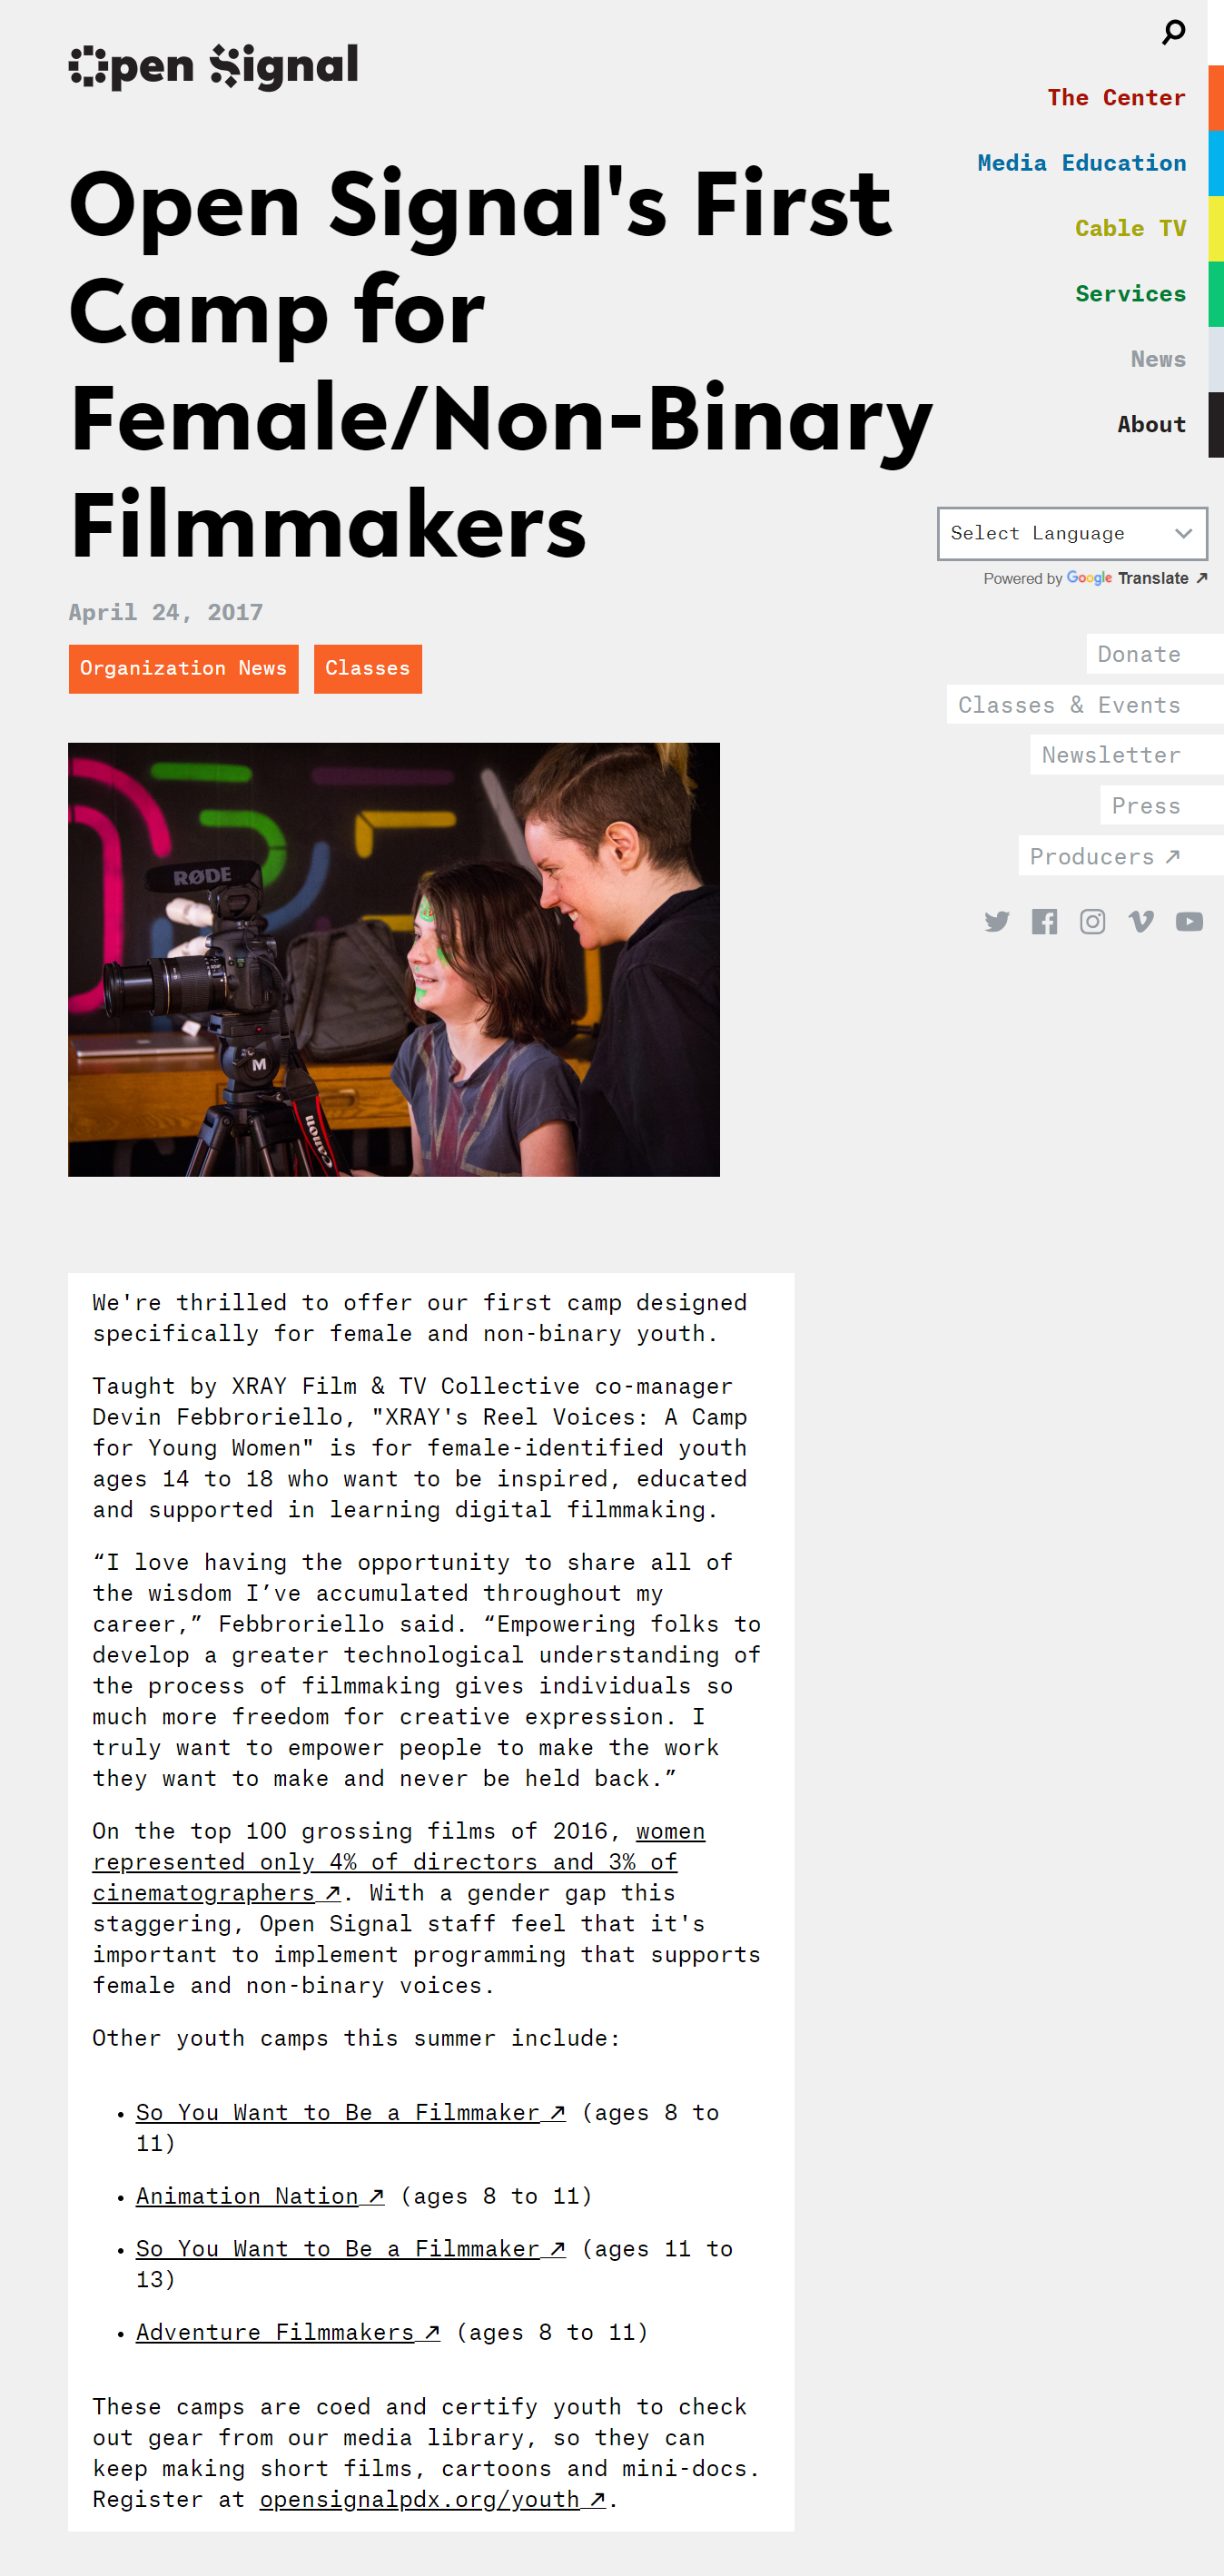 www.opensignalpdx.org_news_open-signals-first-camp-for-female-non-binary-filmmakers_ (2).png